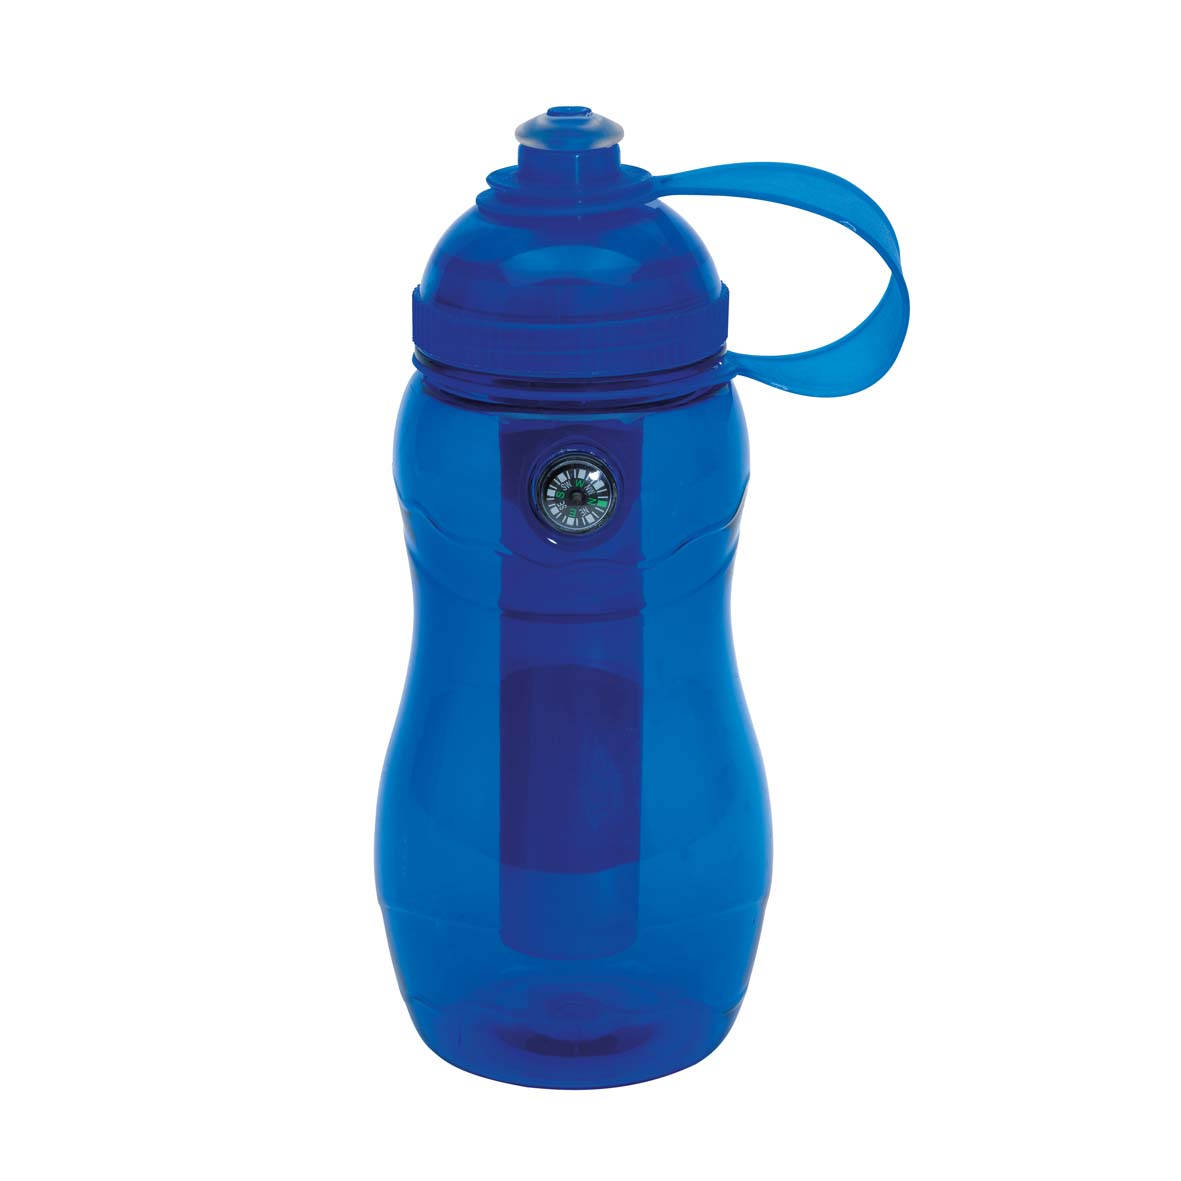 Drinking bottle 'On track' - Blue ins-0304195